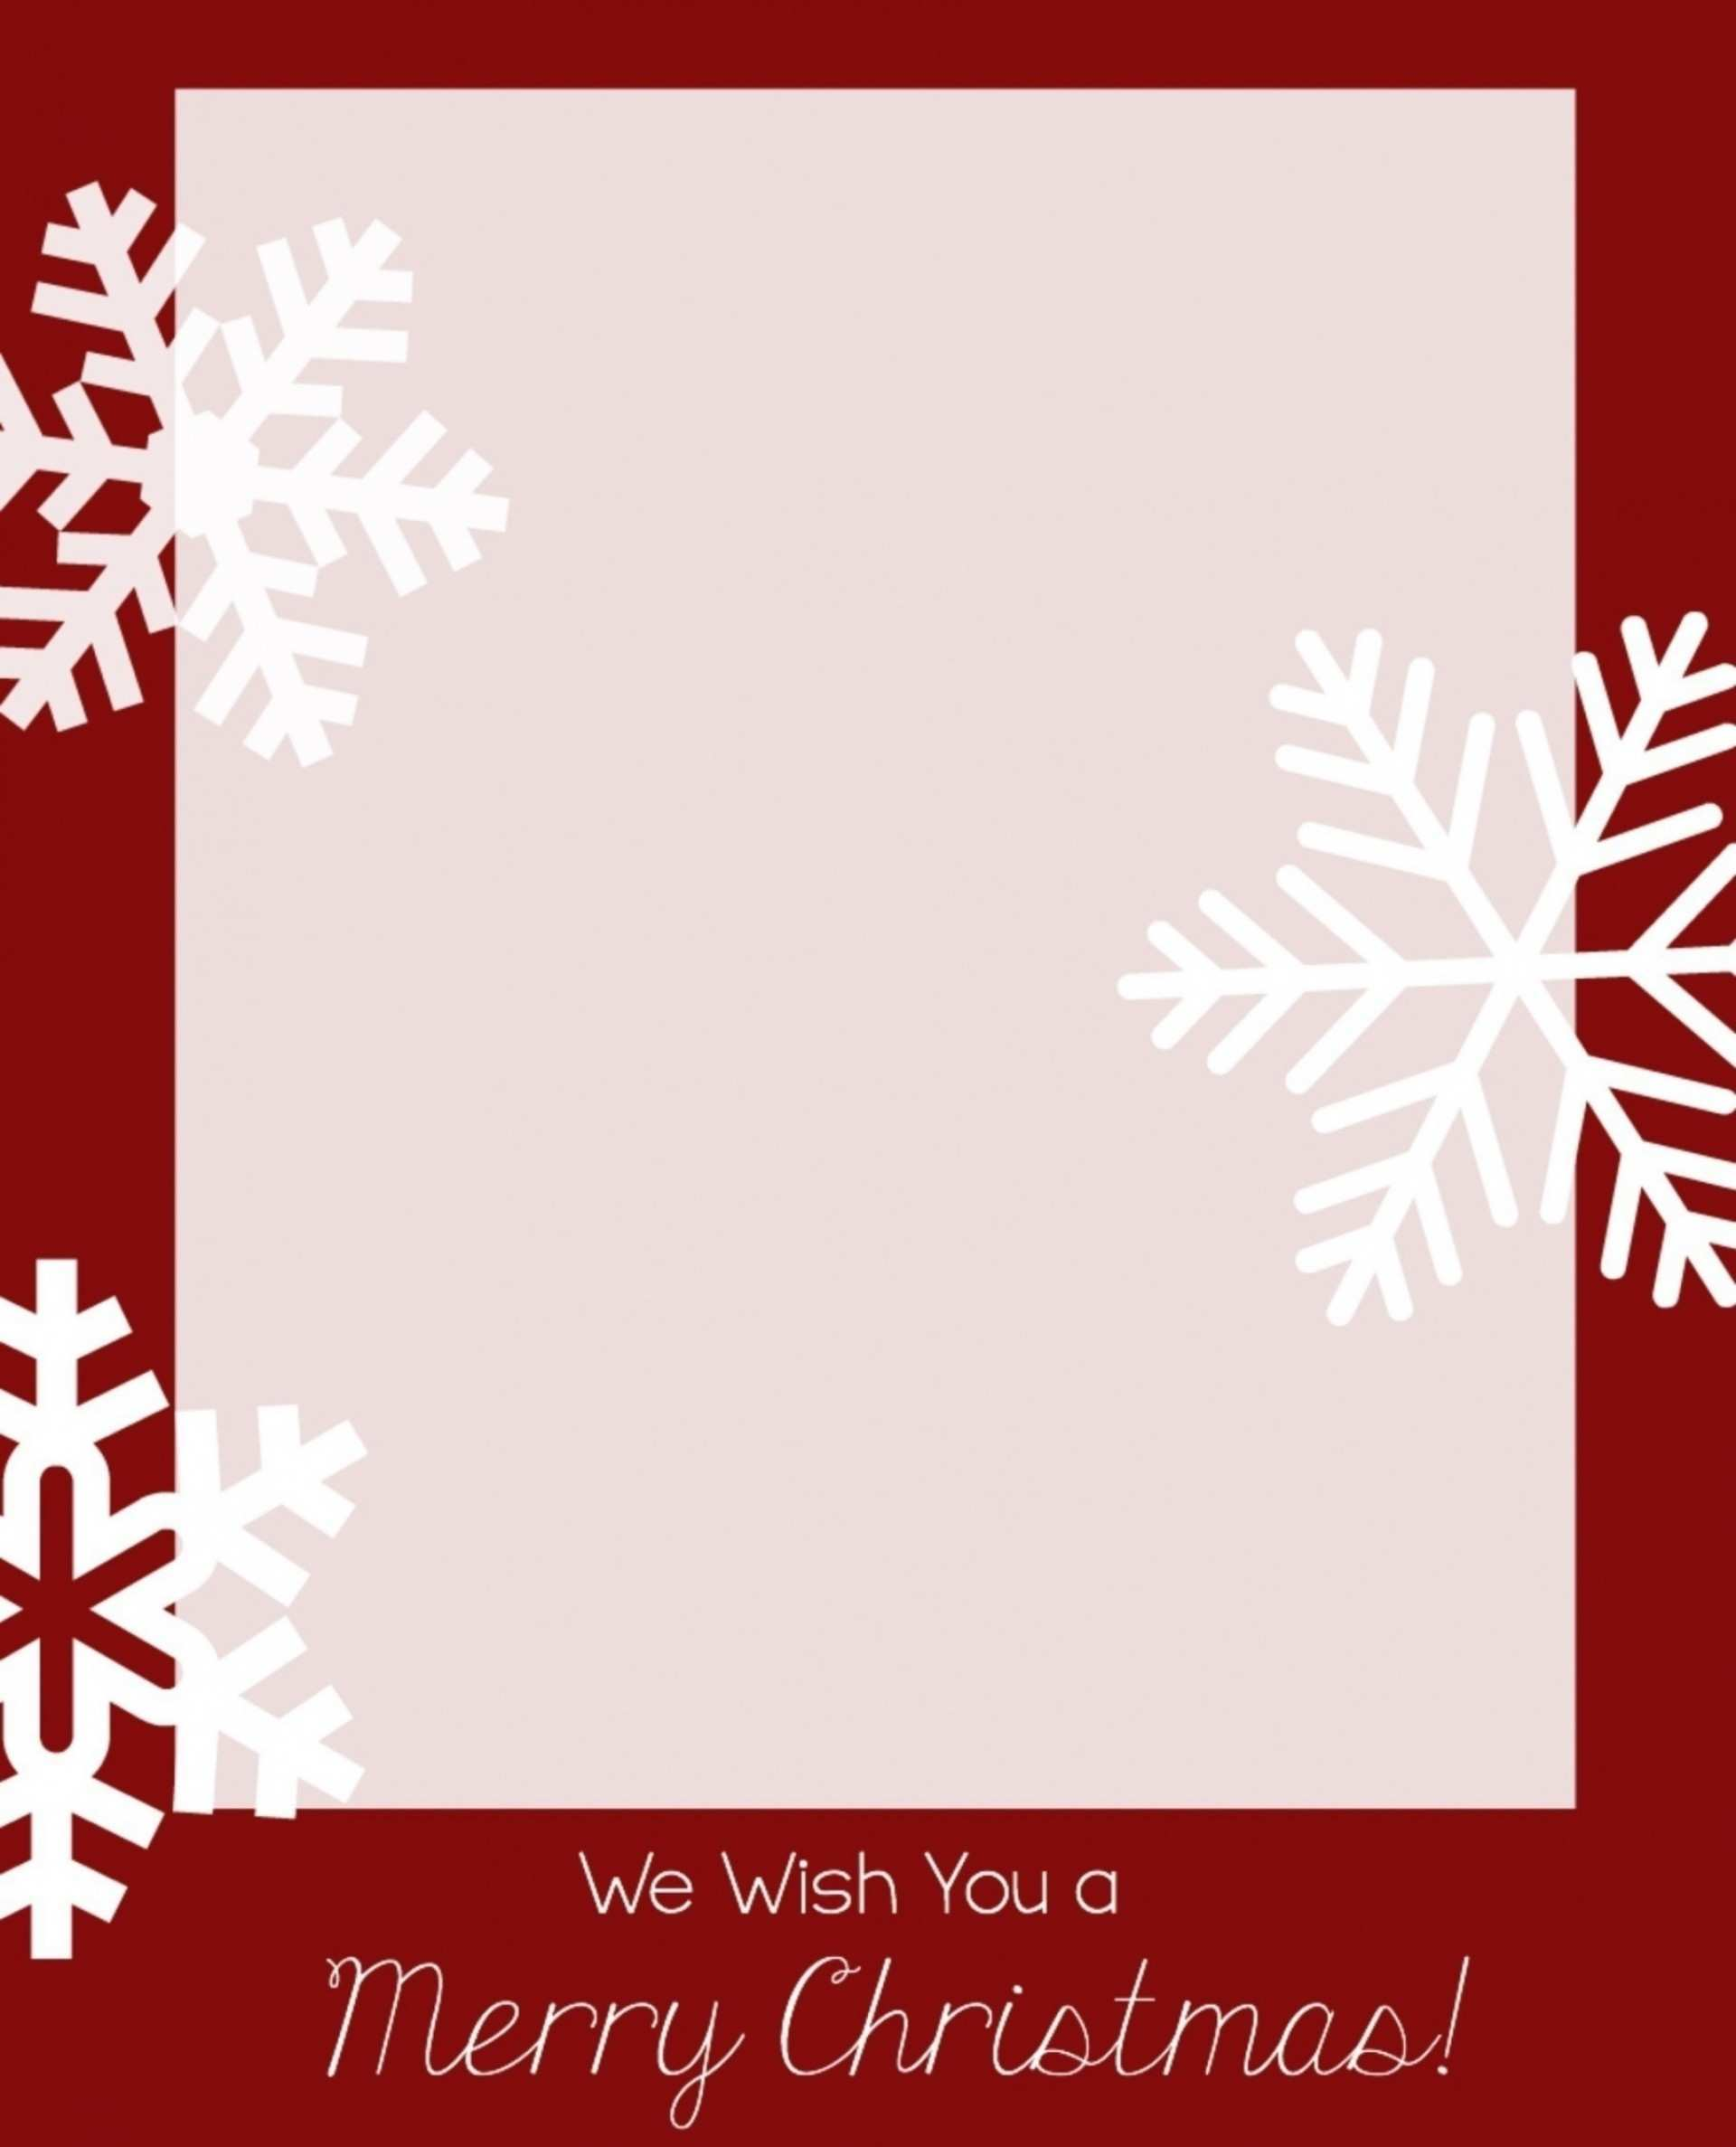 46 Report Christmas Card Templates Word Free for Ms Word with Christmas Card Templates Word Free